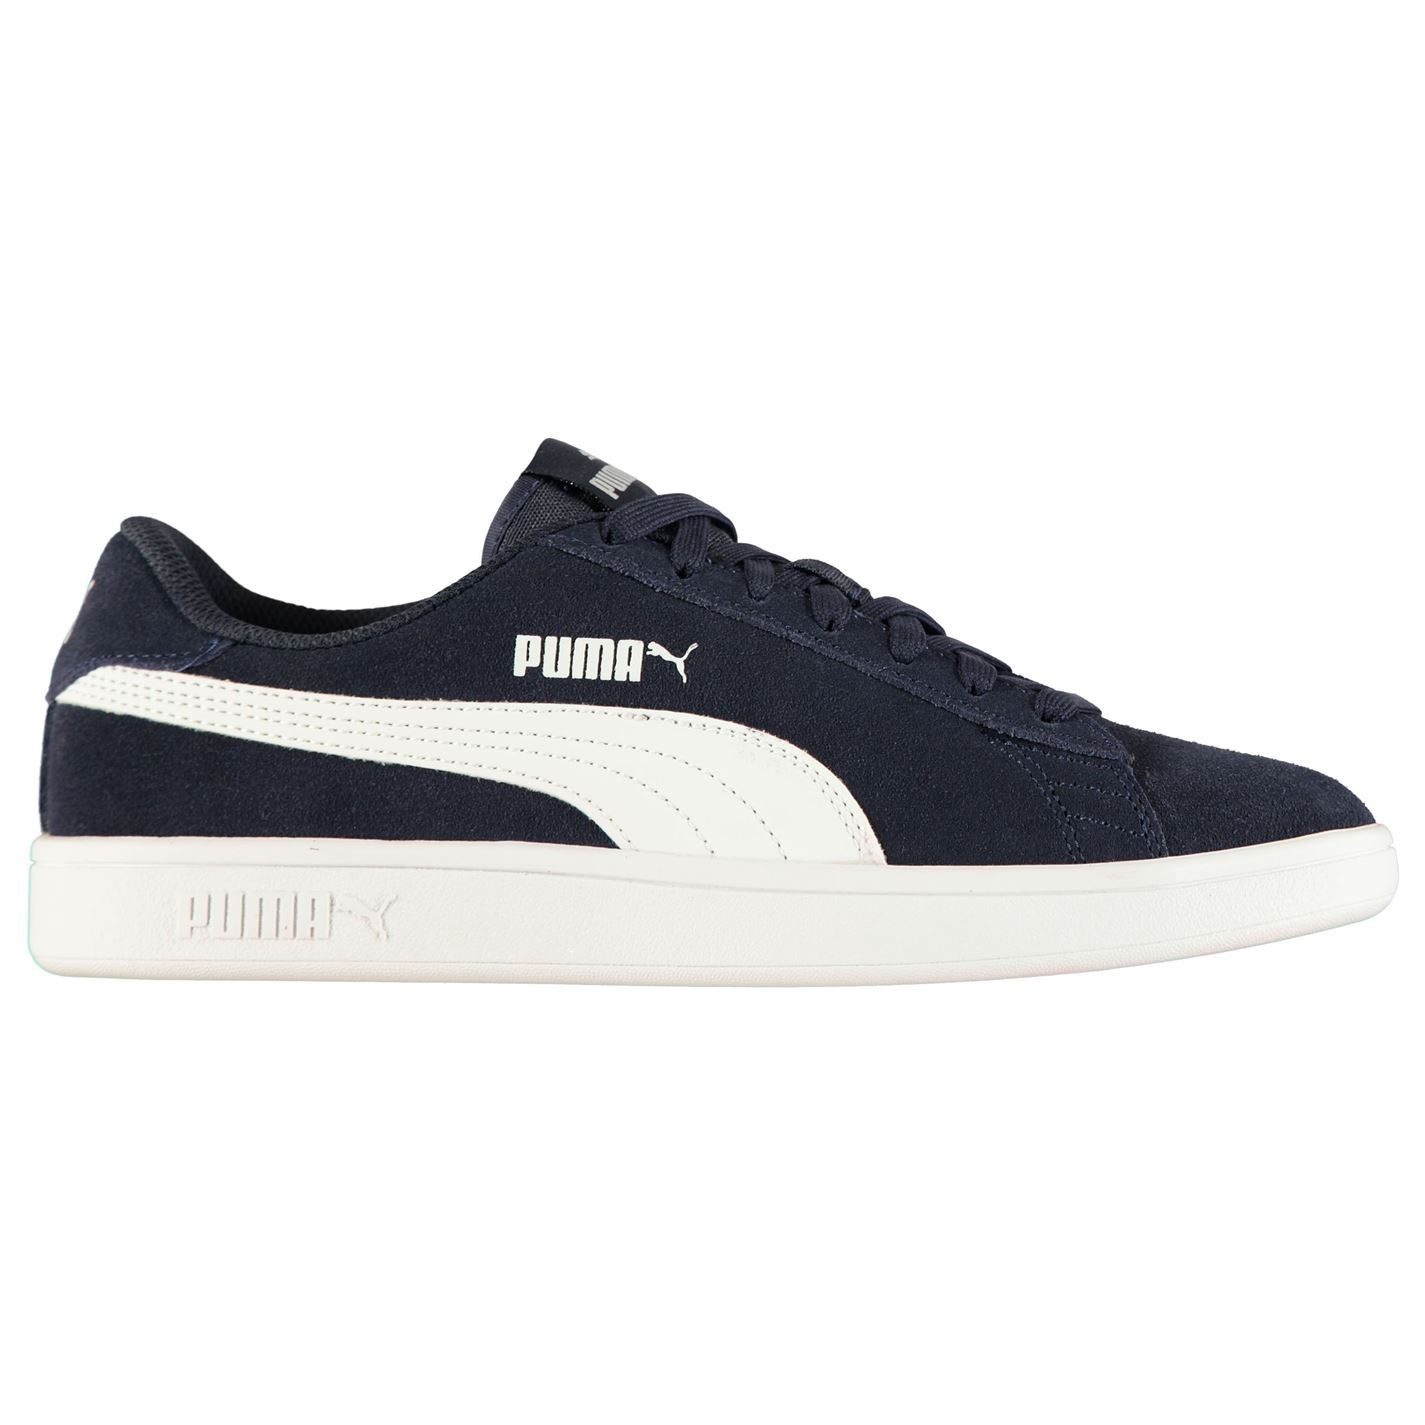 Puma-Smash-V2-Suede-Trainers-Mens-Shoes-Sneakers-Athleisure-Footwear thumbnail 13